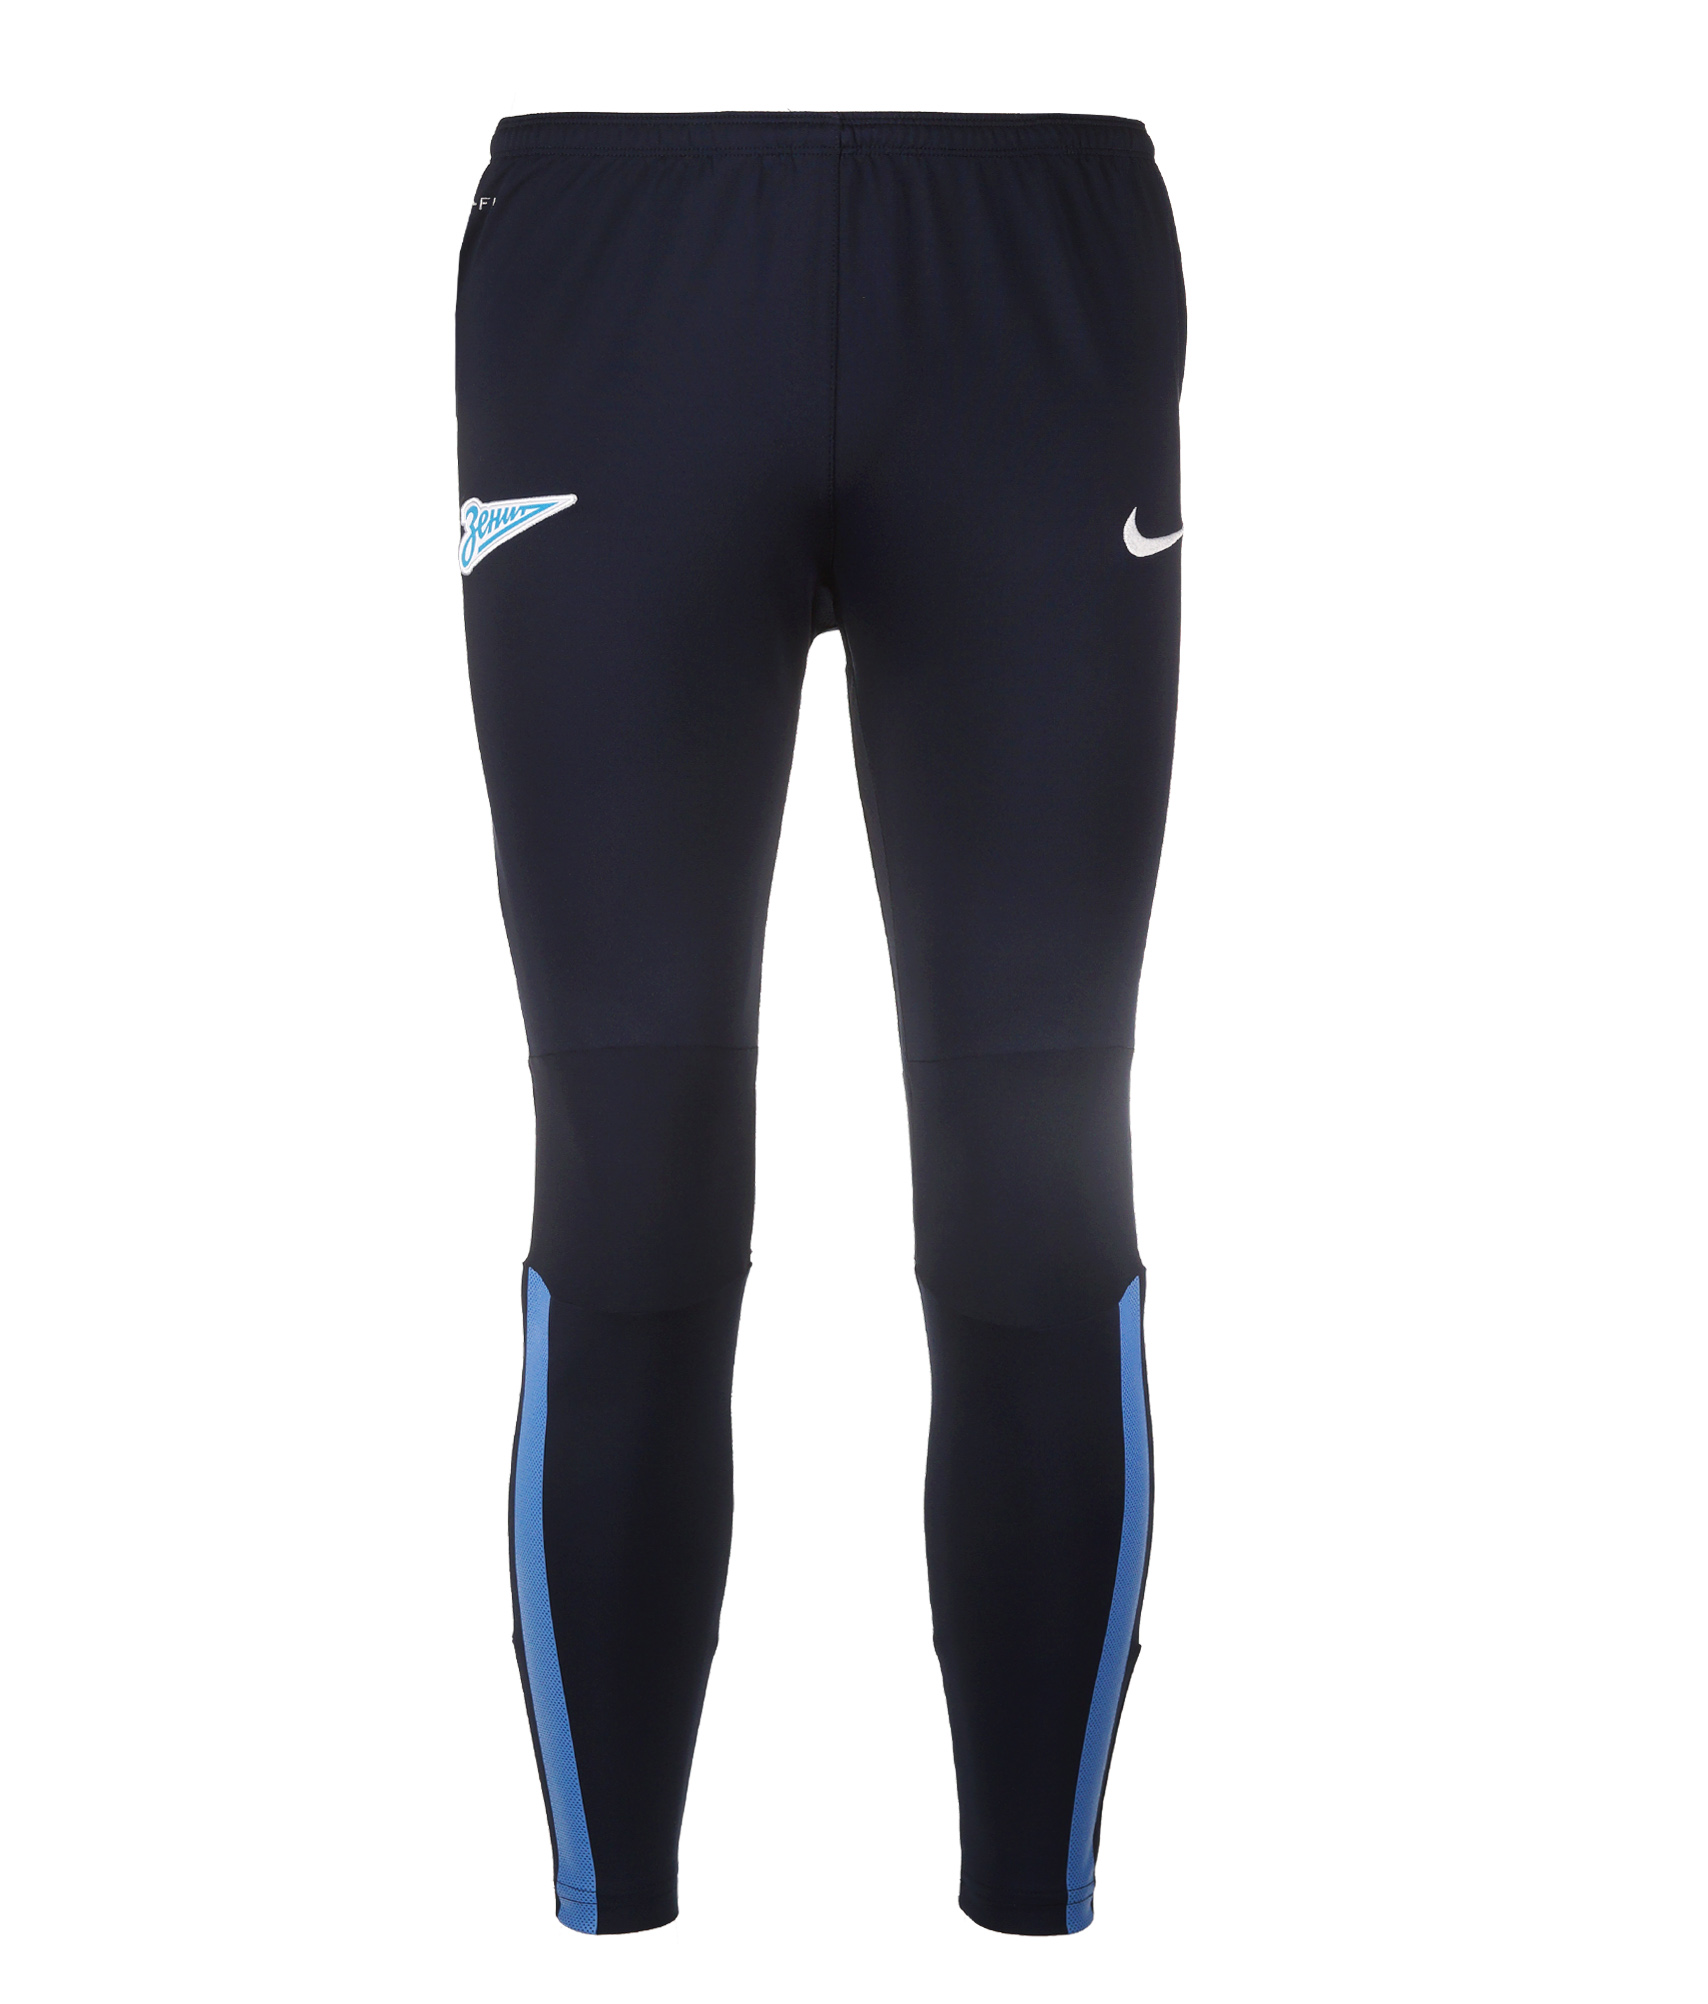 Брюки ZENIT SELECT TECH PANT Nike Цвет-Синий nike nike select strike tech pant